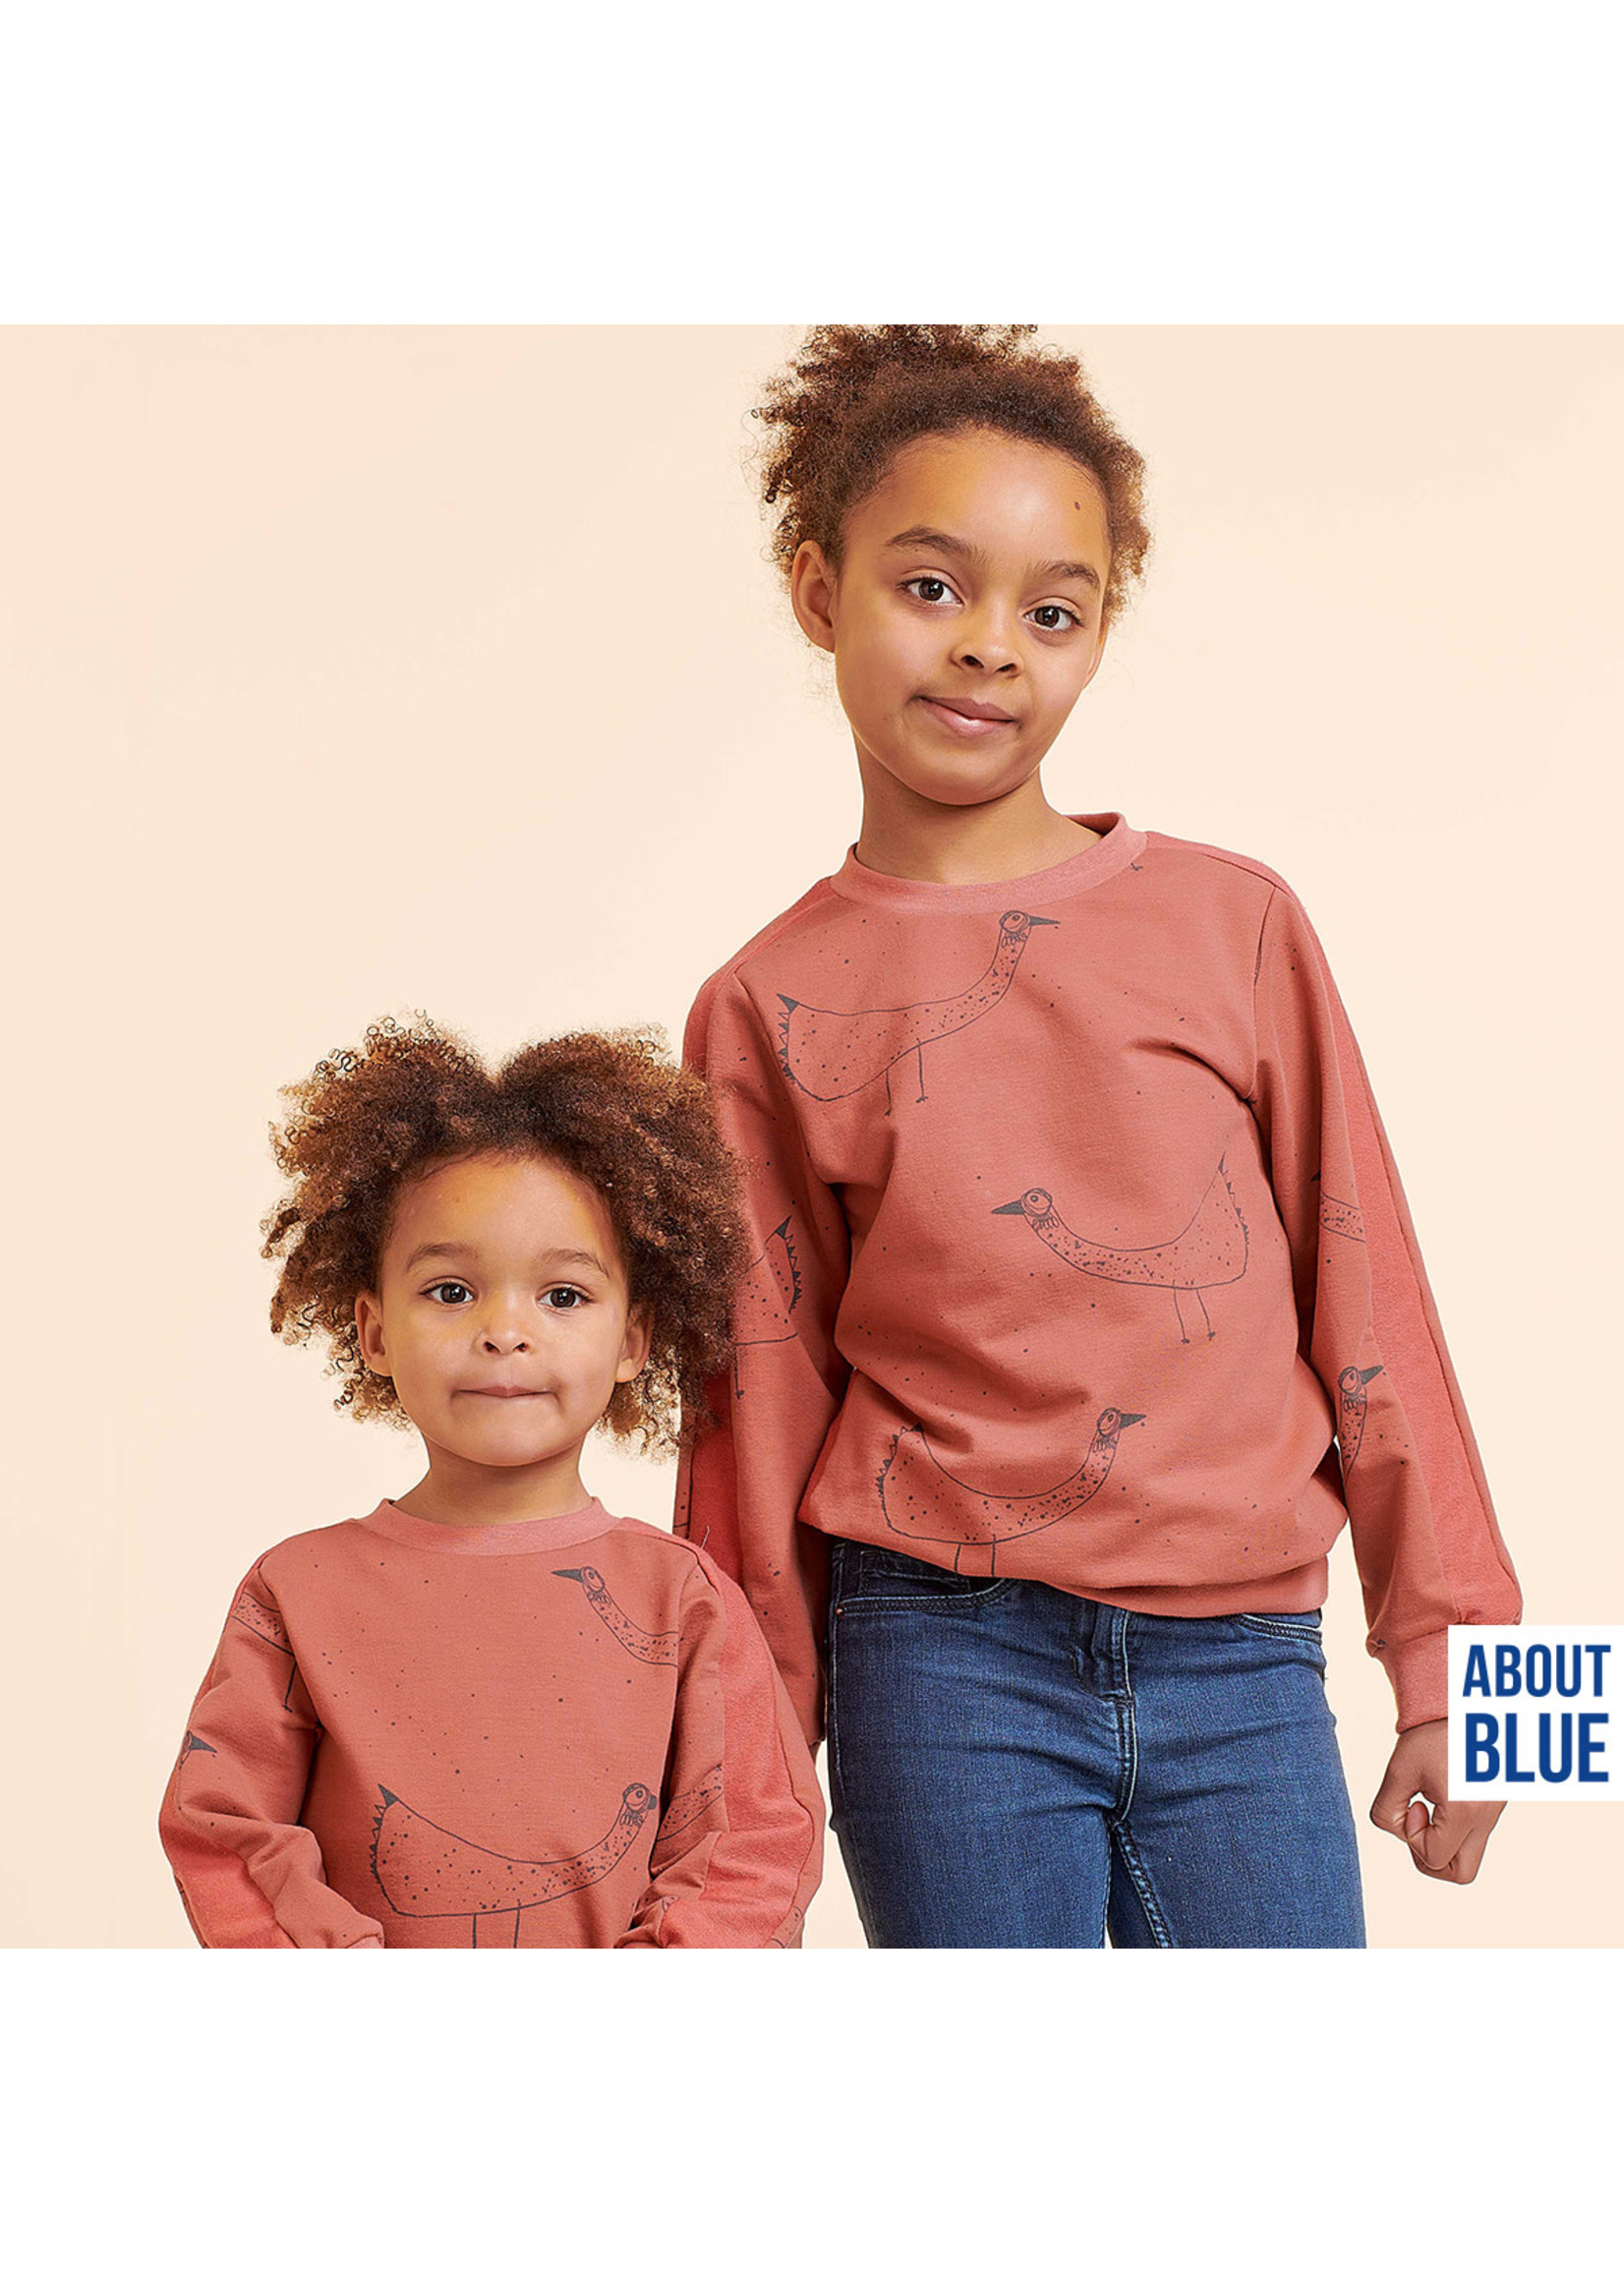 About Blue Fabrics All We Have Is Now - Hen House